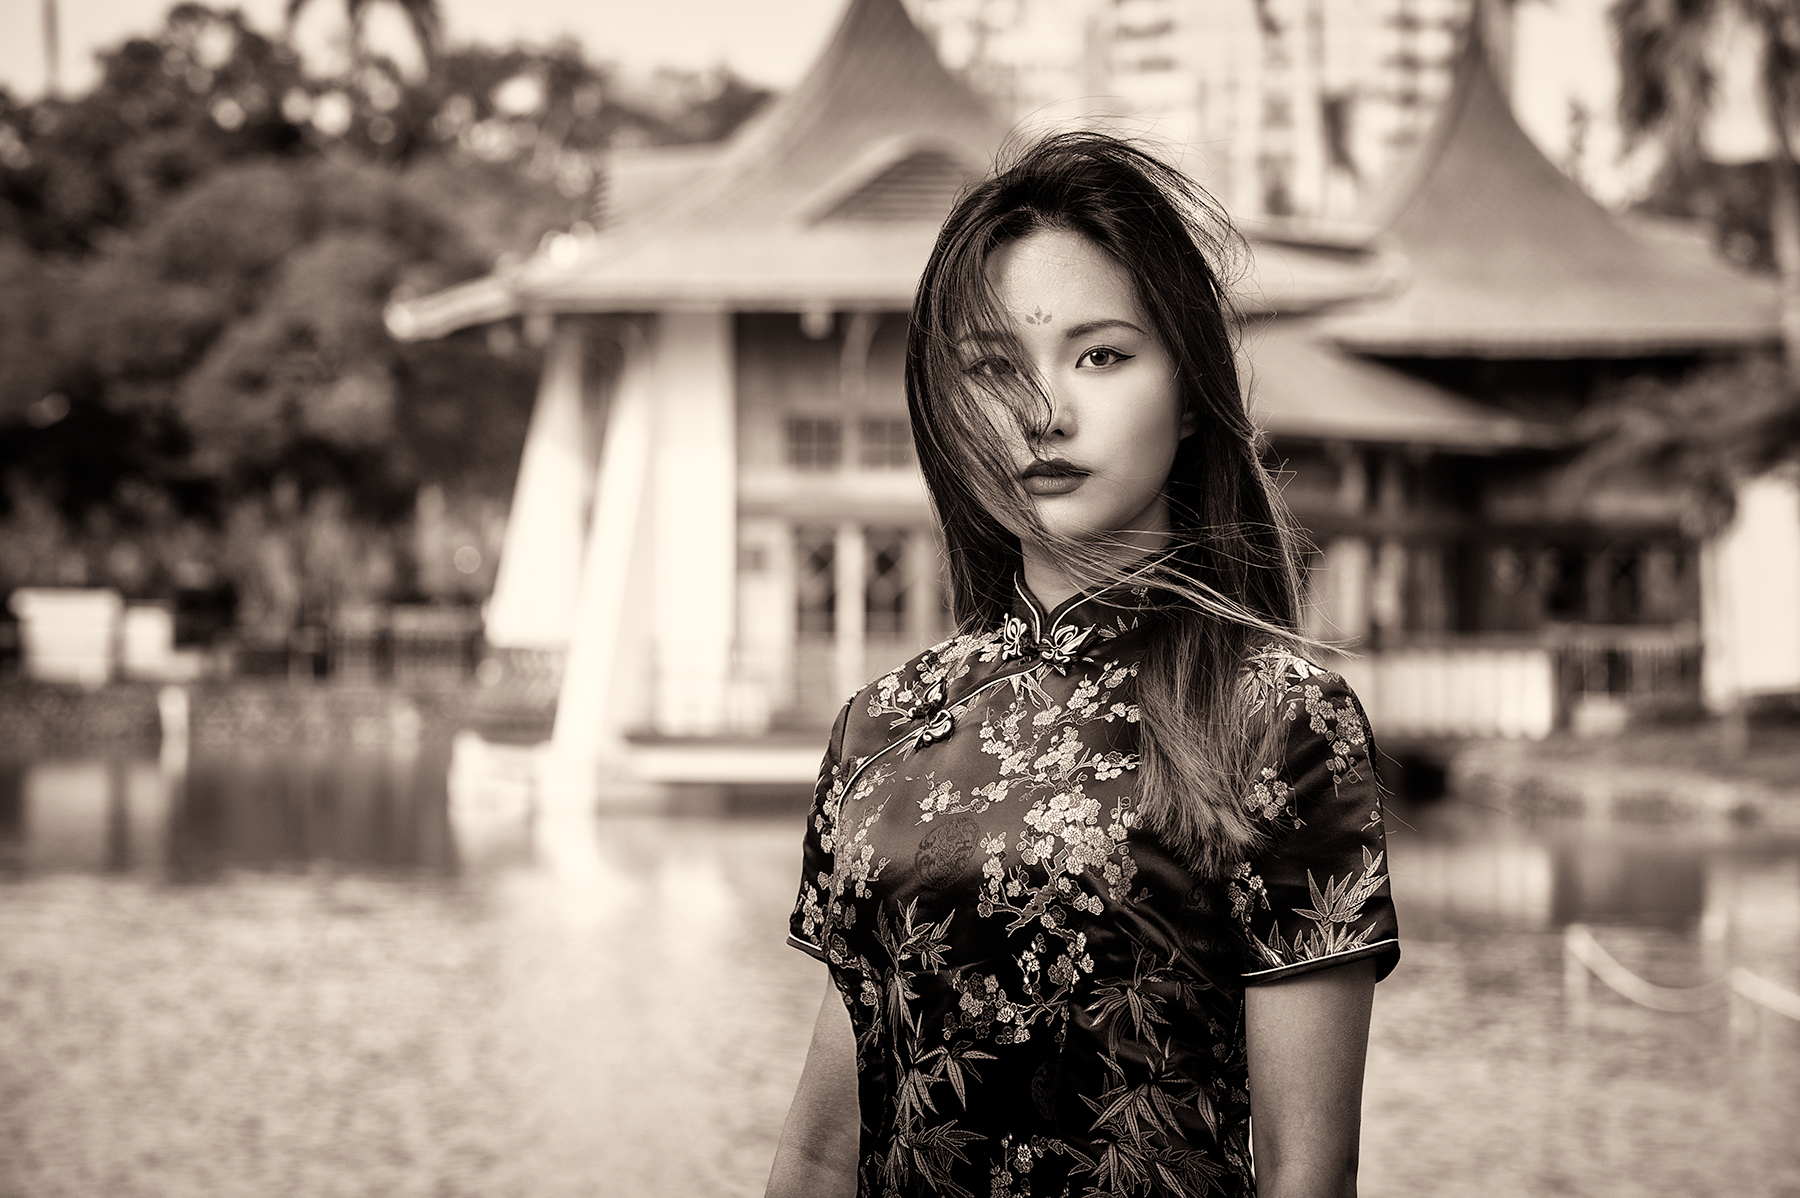 Taiwan Photographer Henry Westheim: Beauty and Fashion Portrait Photography